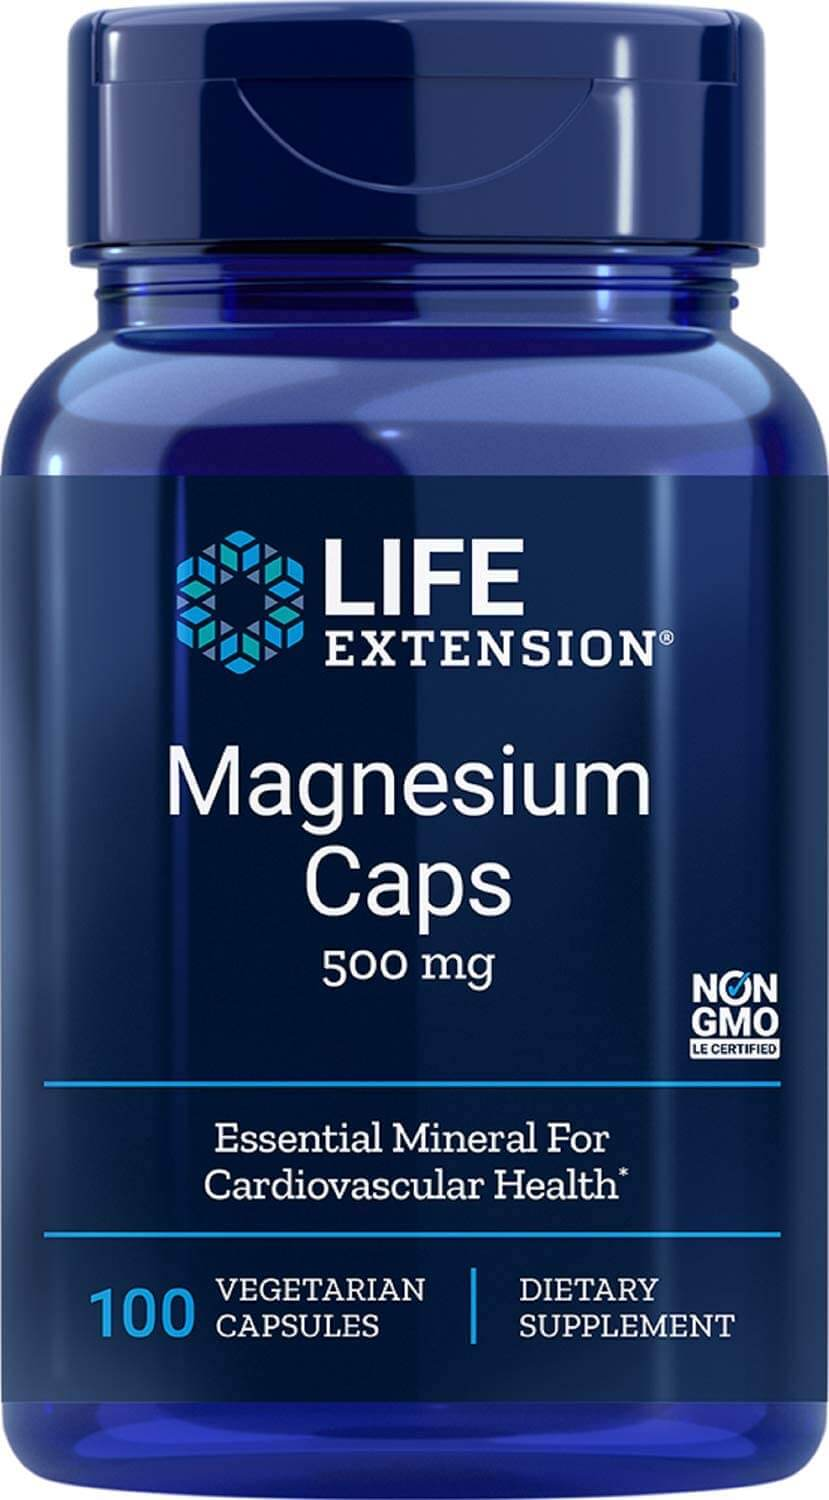 Life Extension Magnesium